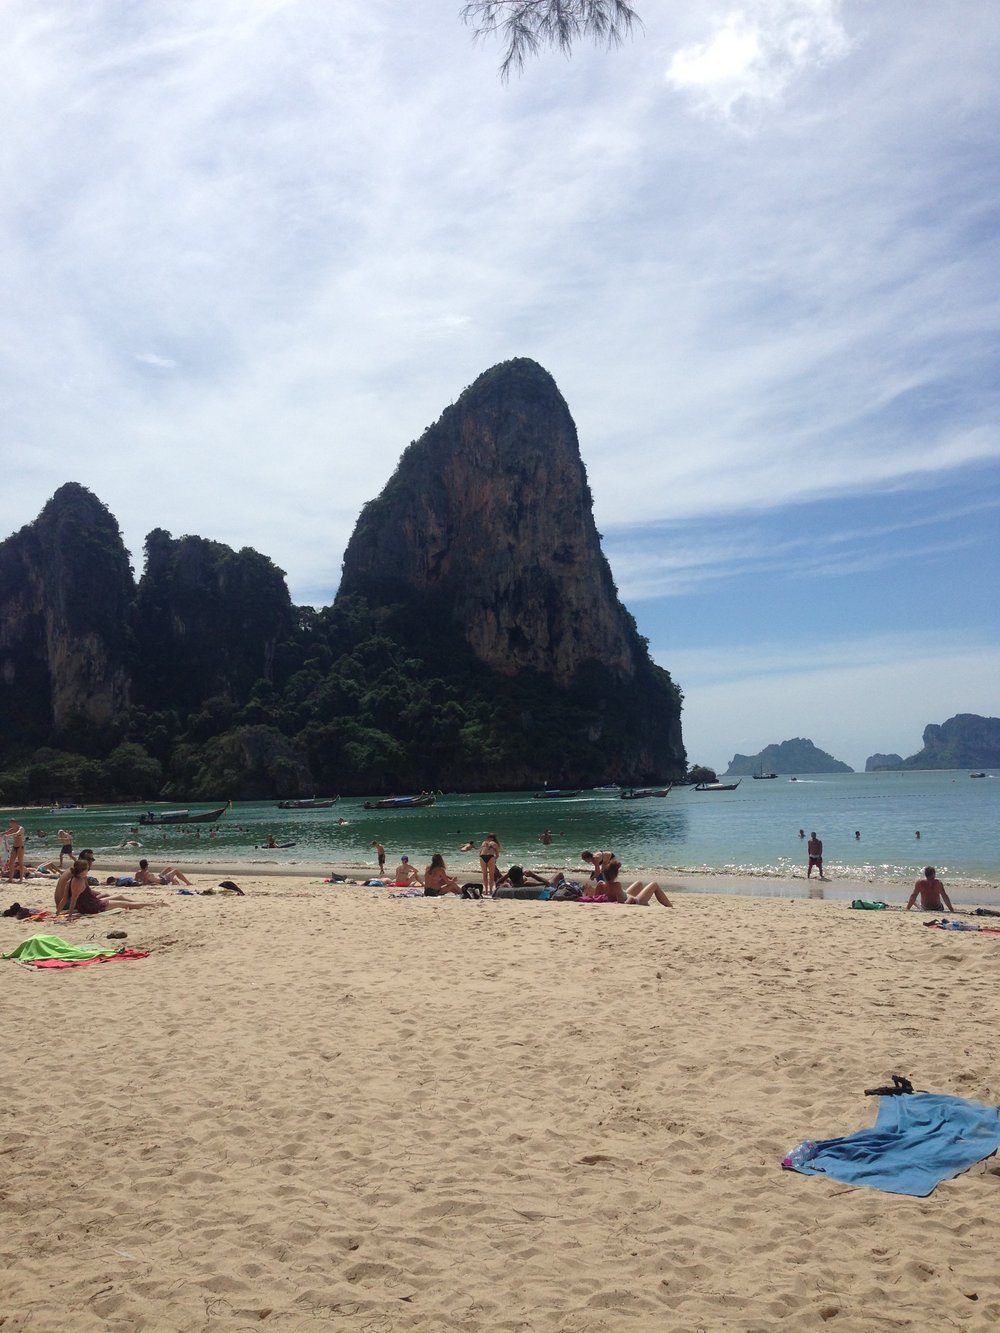 Cliffs over Railay Beach, Ao Nang, Thailand